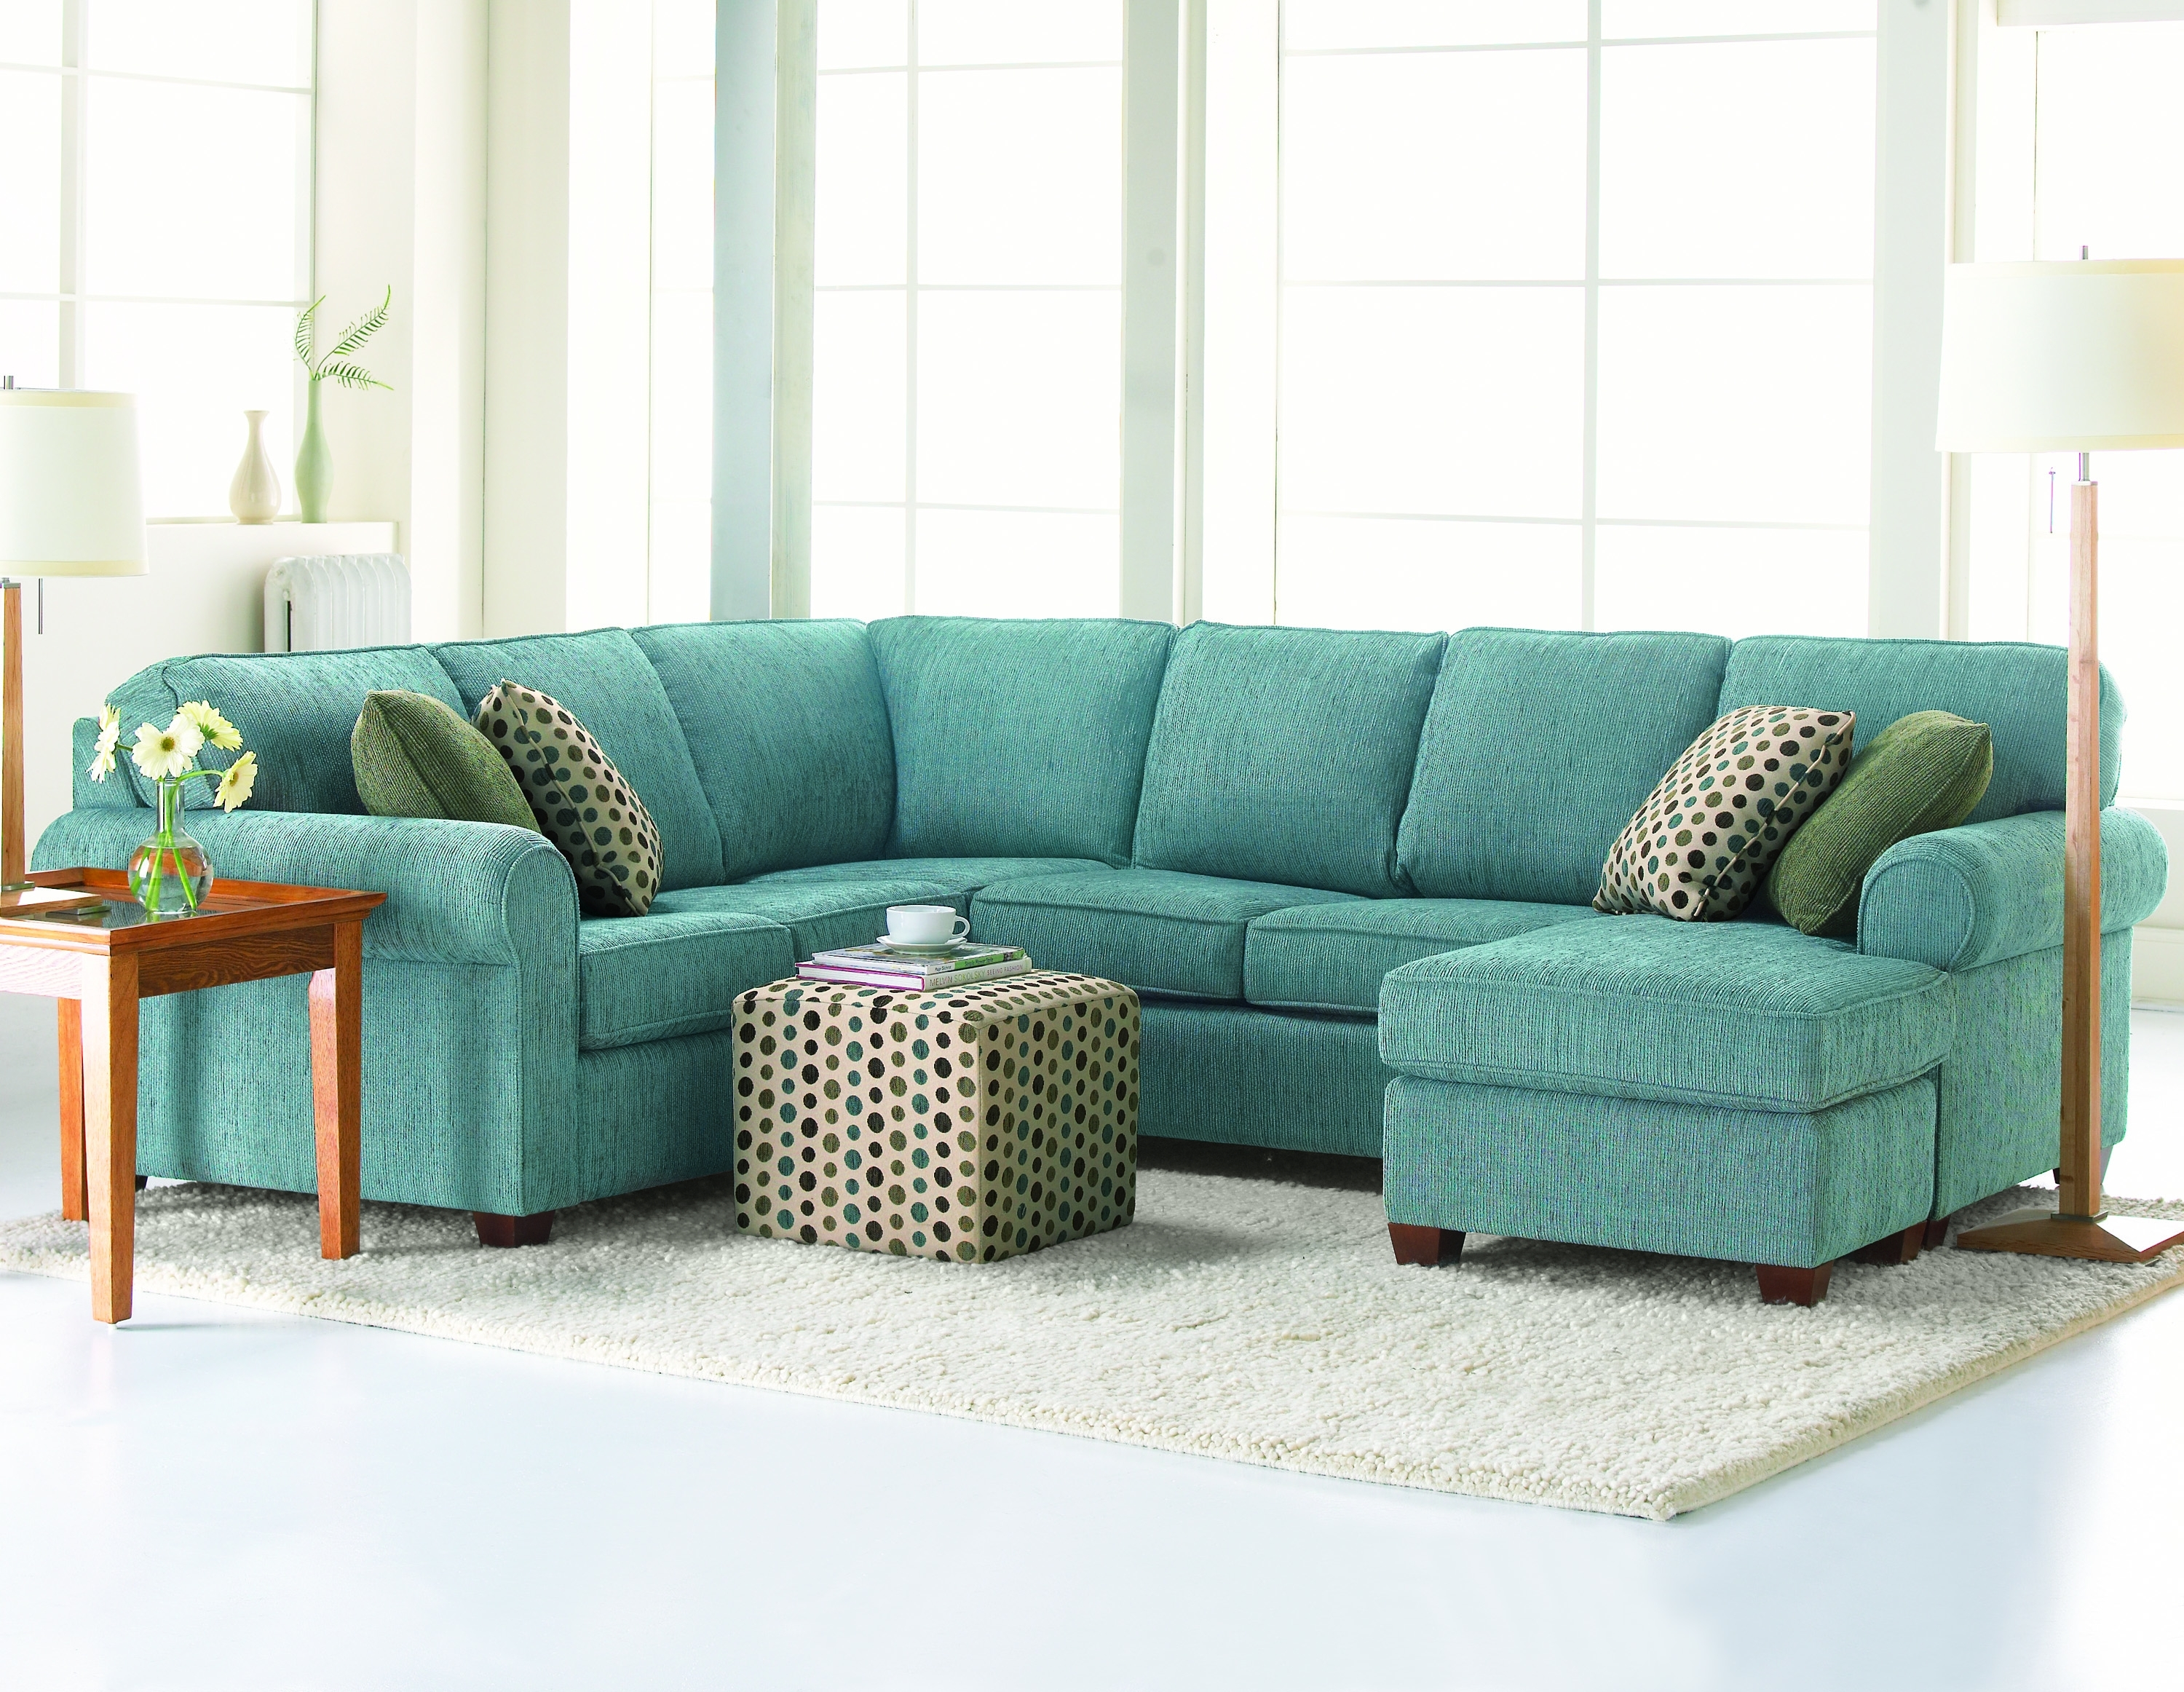 Sectional Sofas – Thompson Brothers Furniture Throughout Ontario Canada Sectional Sofas (View 6 of 10)